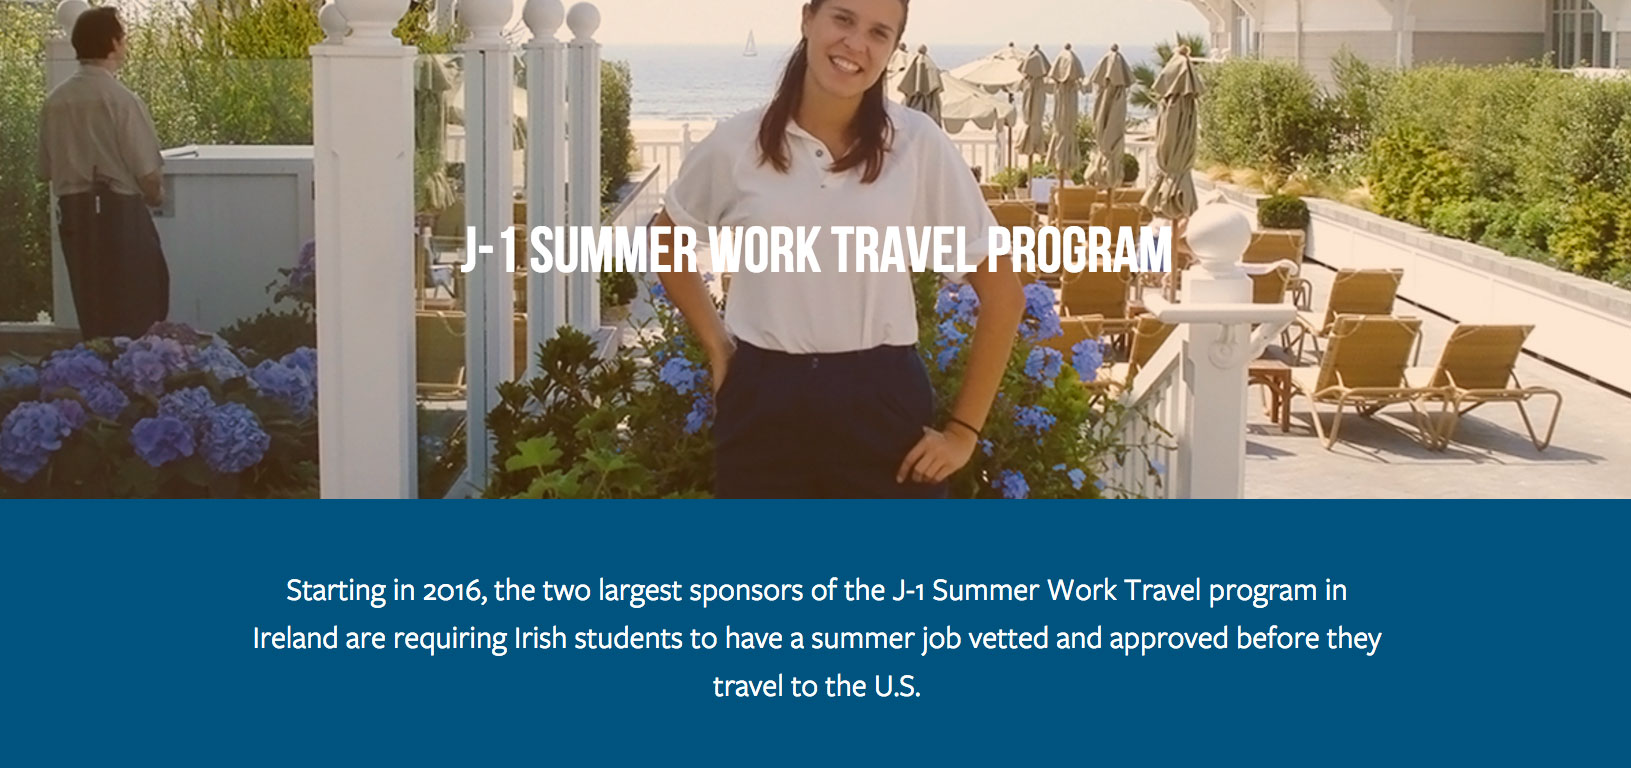 U.S. Ambassador to Ireland Promotes J-1 Work Travel Program